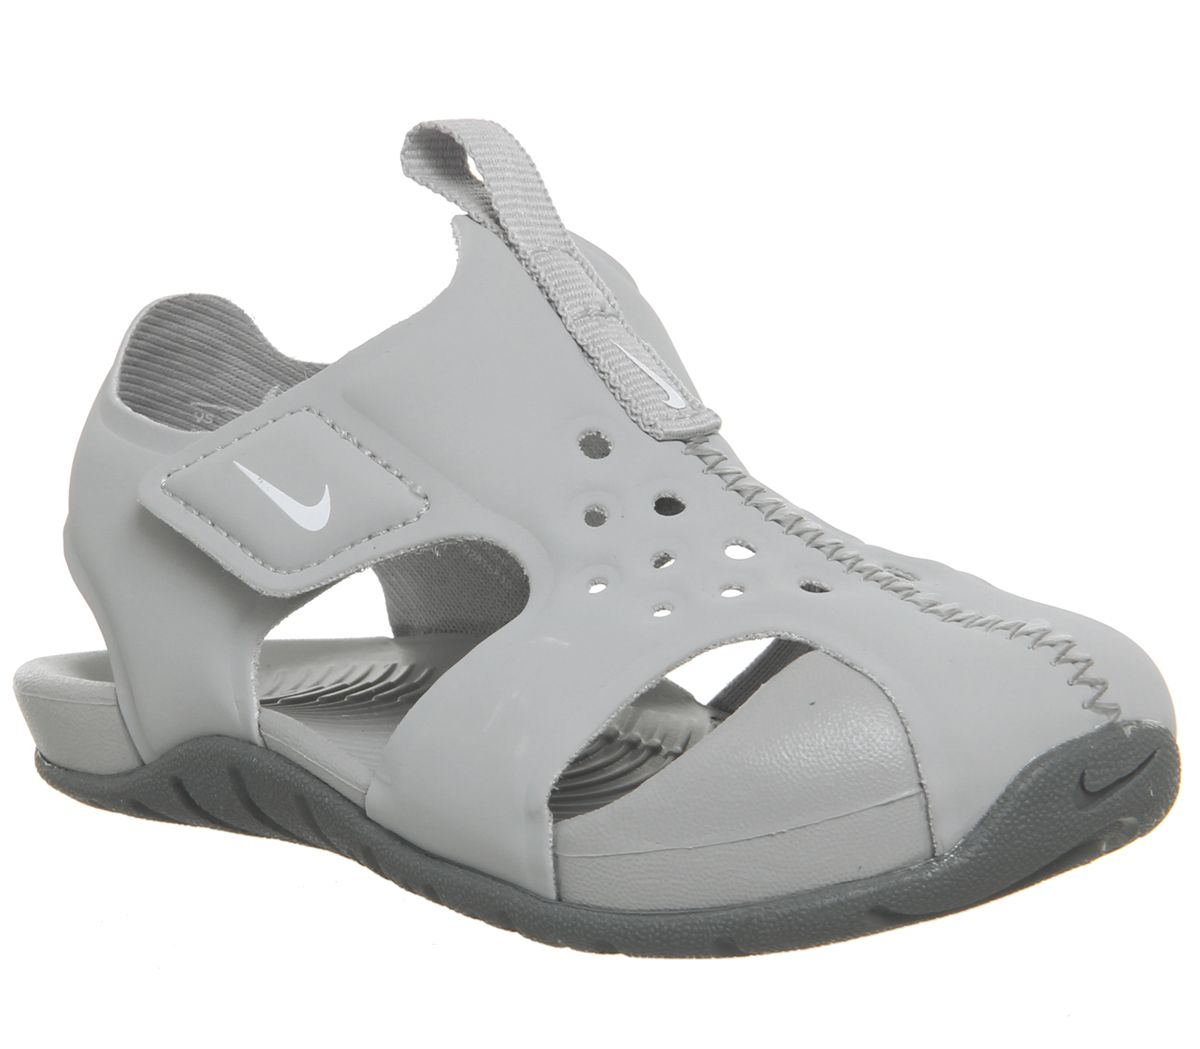 65ac0d6a7acd Nike Sunray Protect Td Sandals Wolf Grey White Cool Grey - Unisex